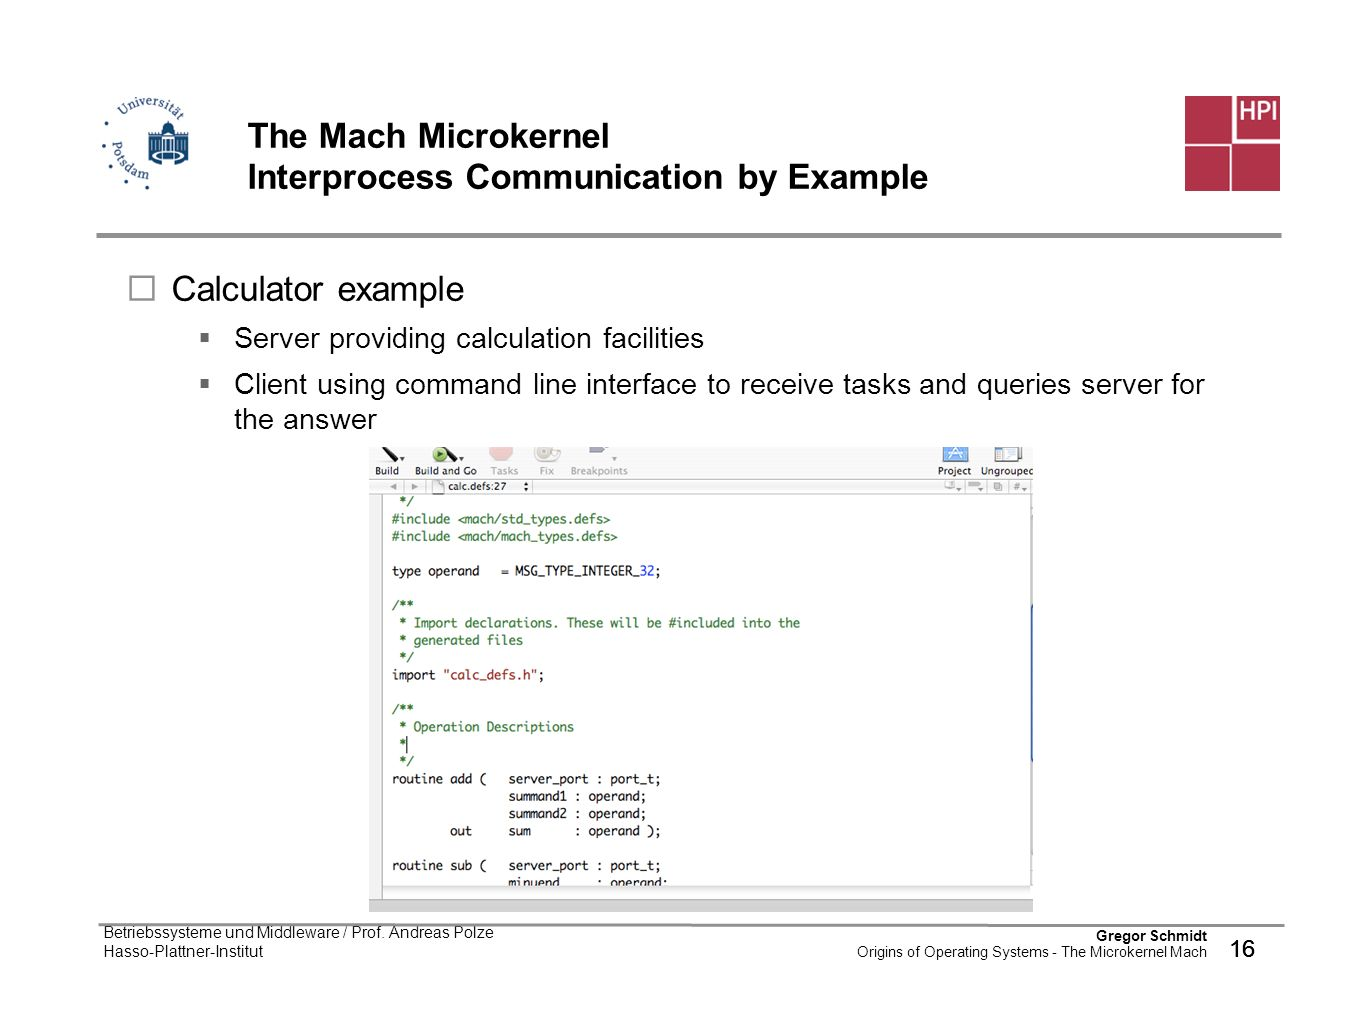 The Mach Microkernel Interprocess Communication by Example